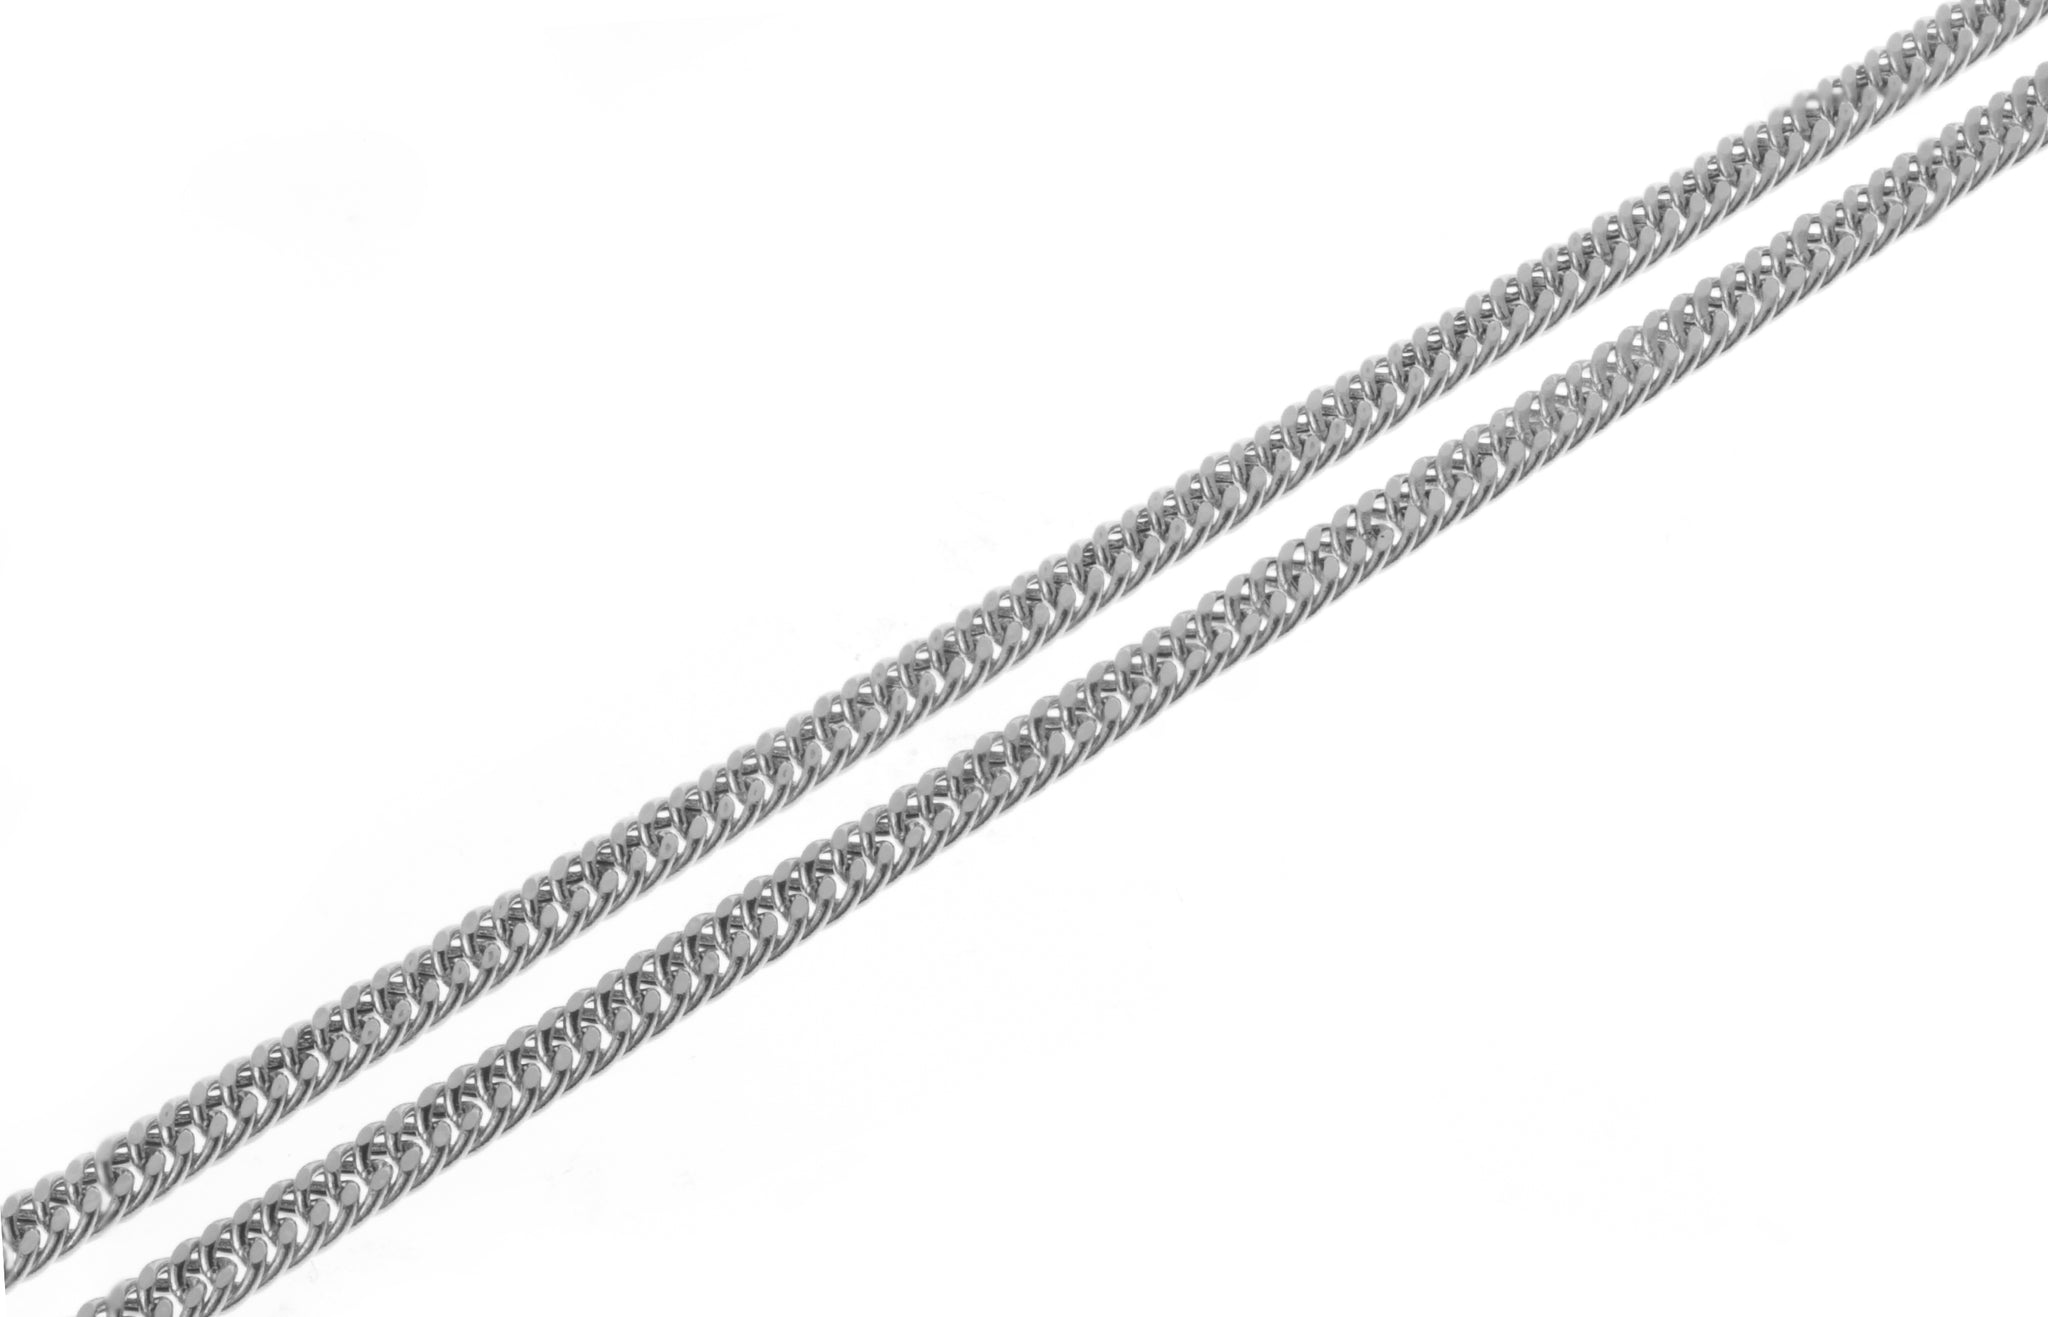 18ct White Gold Curb Link Chain with Ring Clasp CH-09288